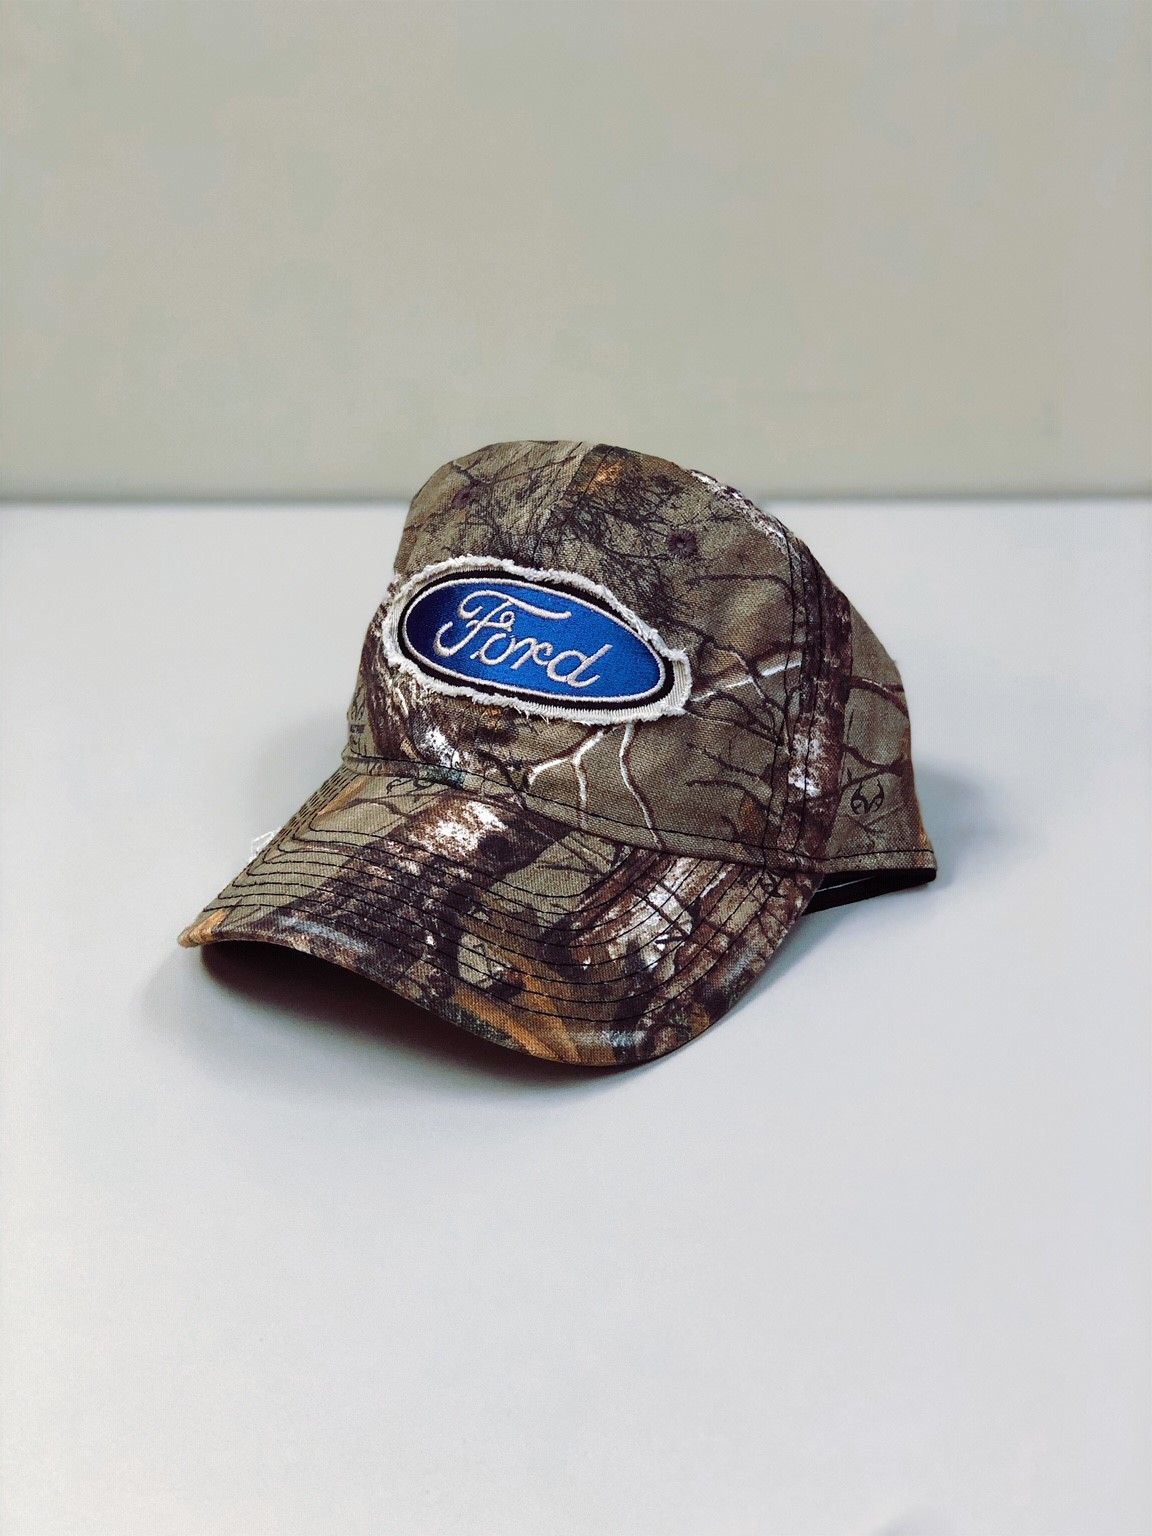 Ford Built Tough Cap - Officially Licensed for sale by Pioneer Promo